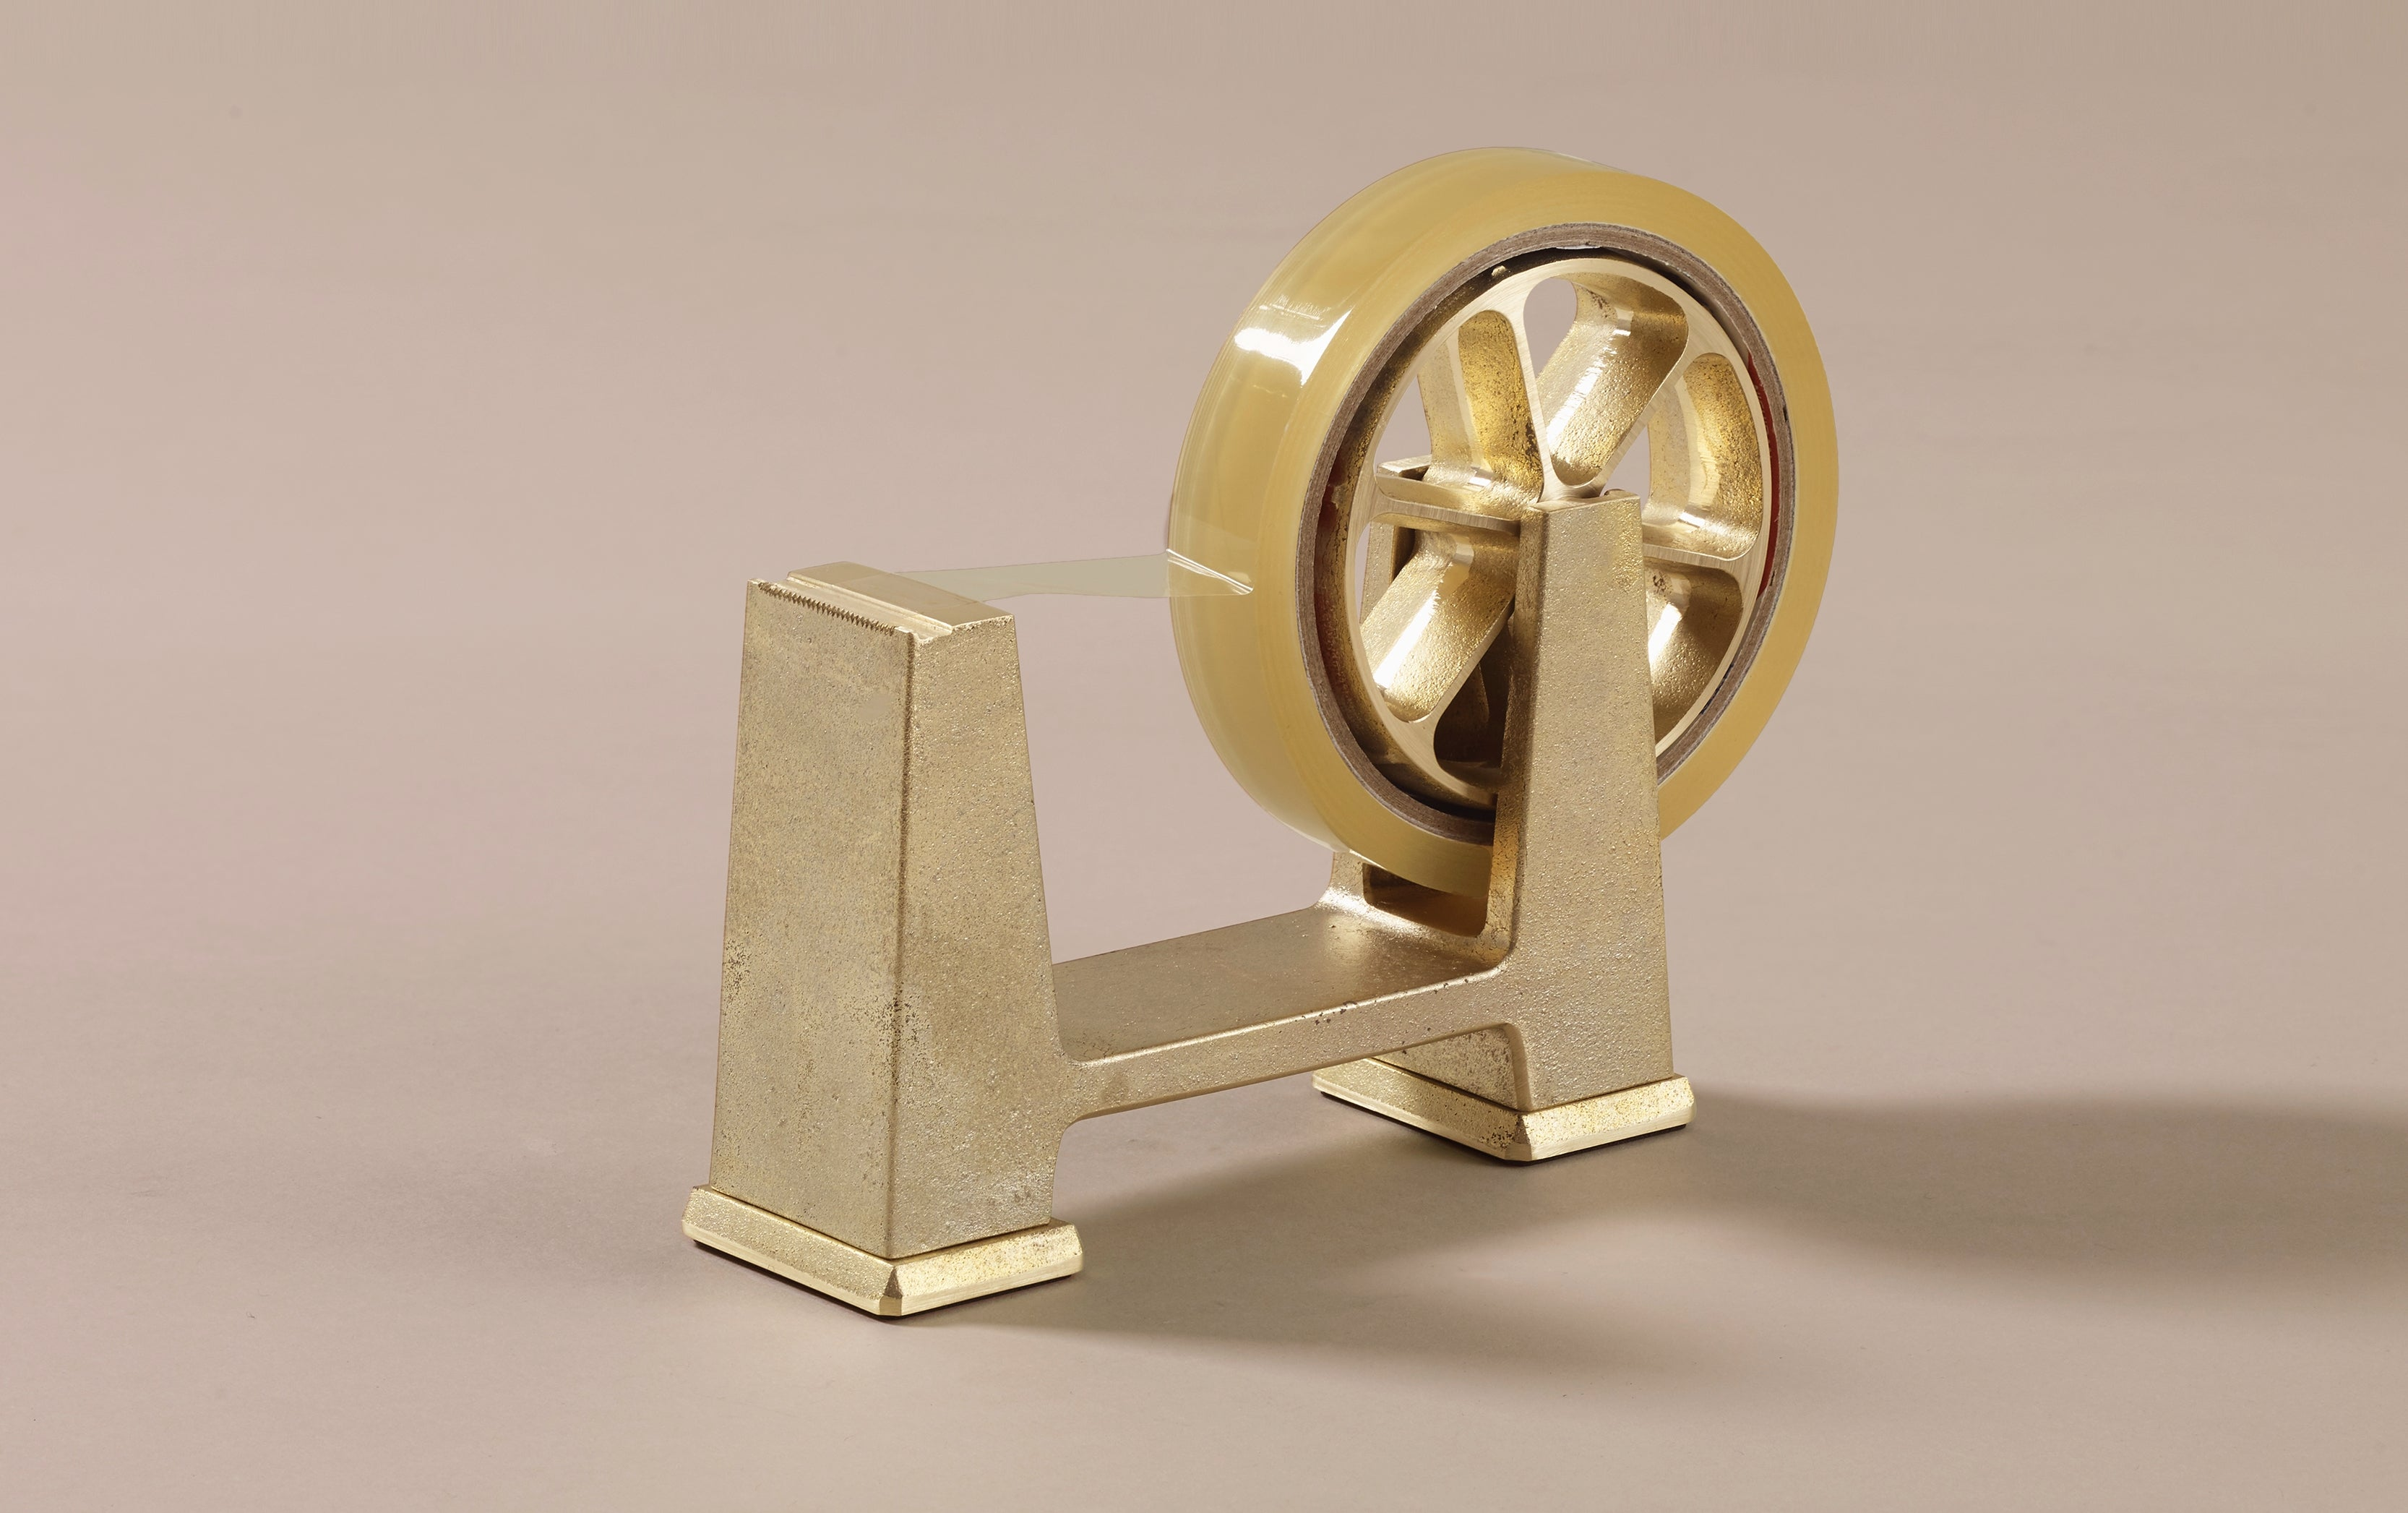 Wabi-Sabi Japanese Brass Tape Dispenser